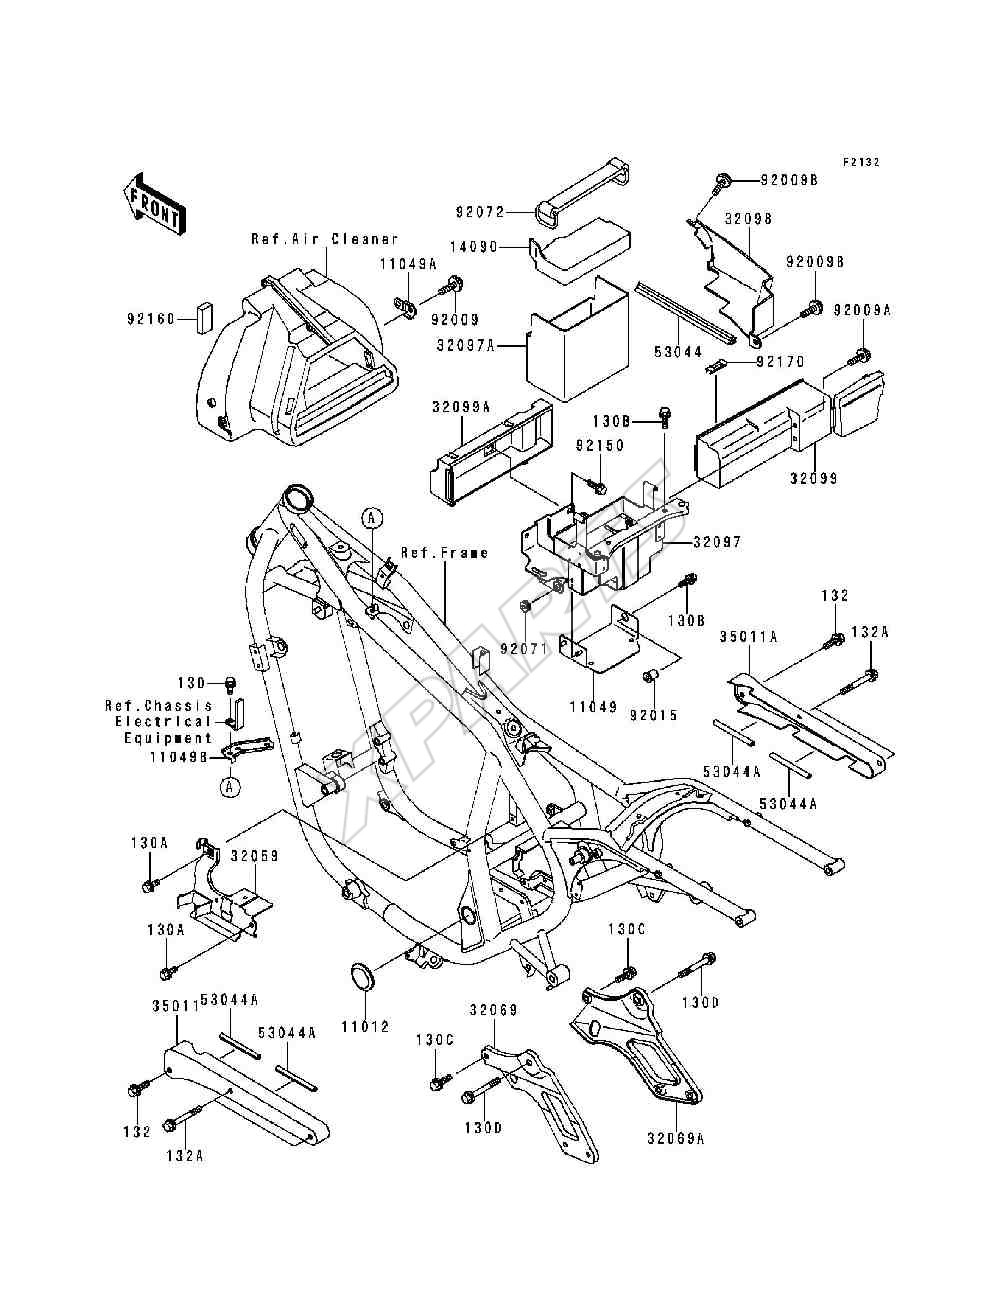 2003 Klr650 Wiring Diagram 2004 Toyota Rav 4 Wire Diagram